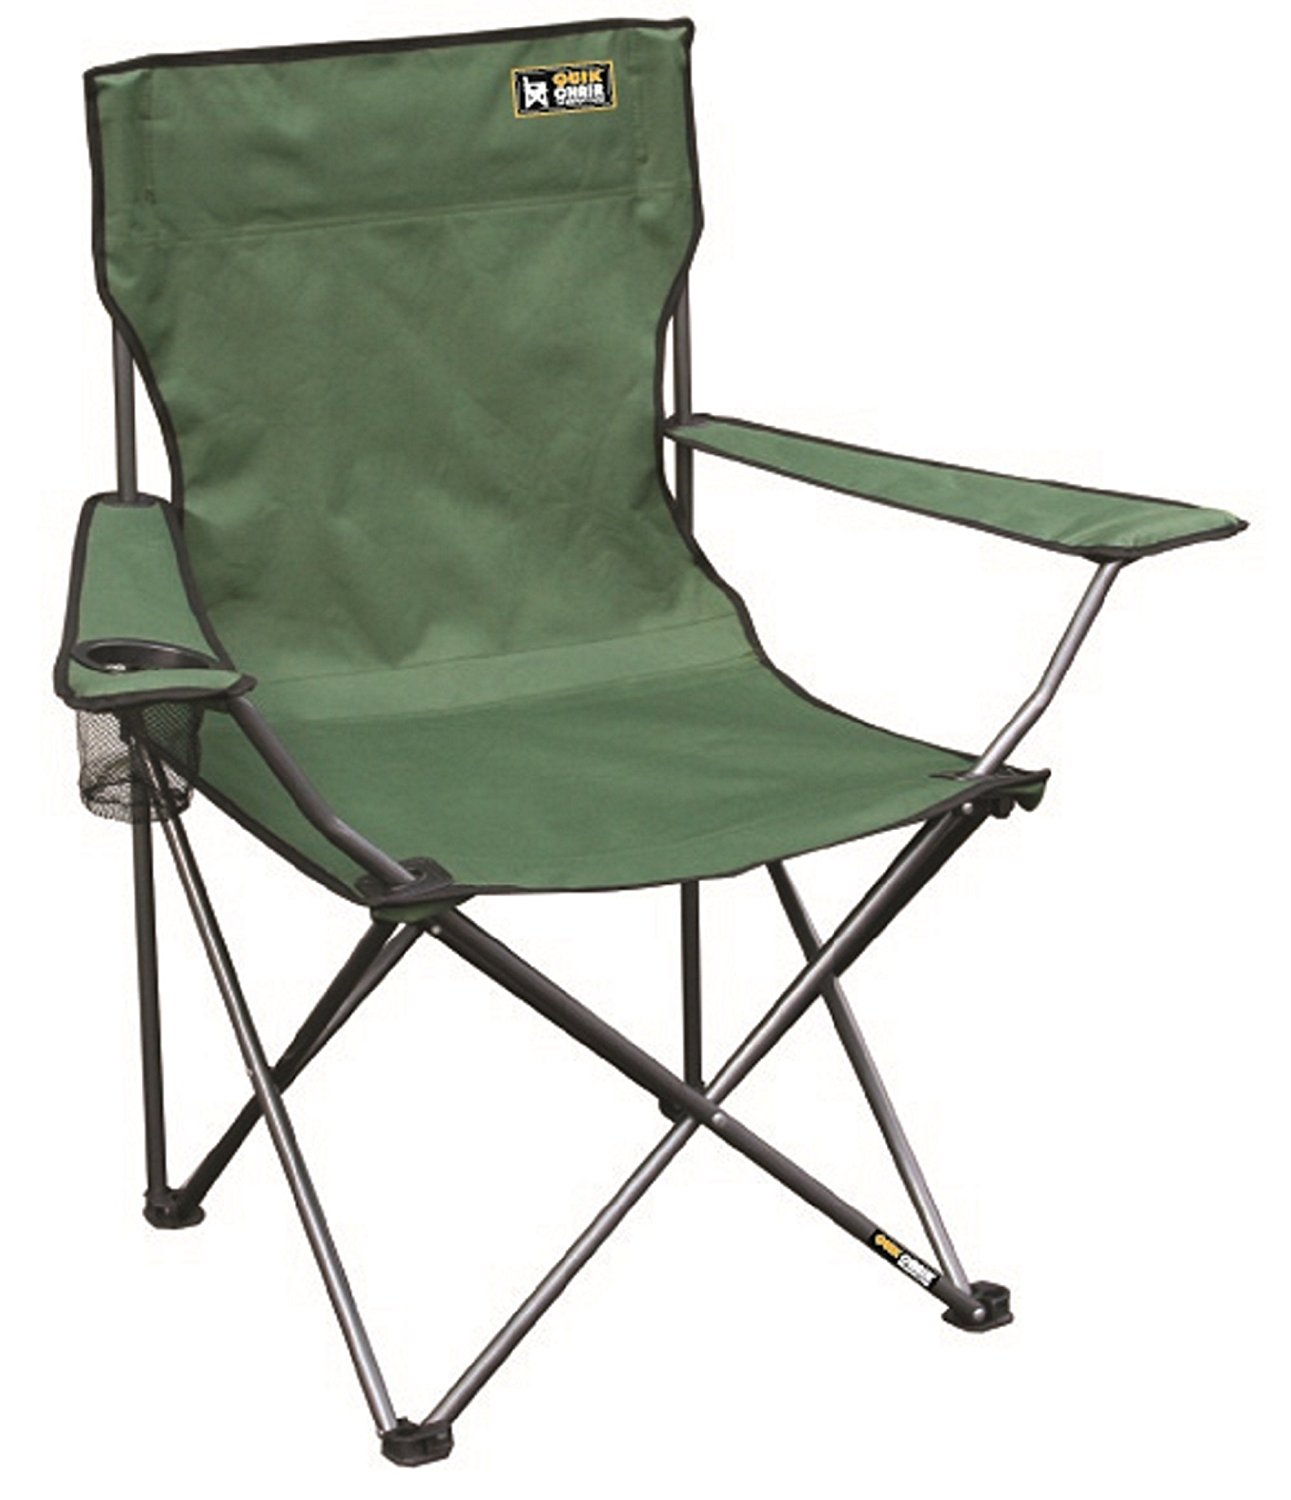 amazon.com : quik chair folding quad mesh camp chair - blue : camping chairs VQRSUSU